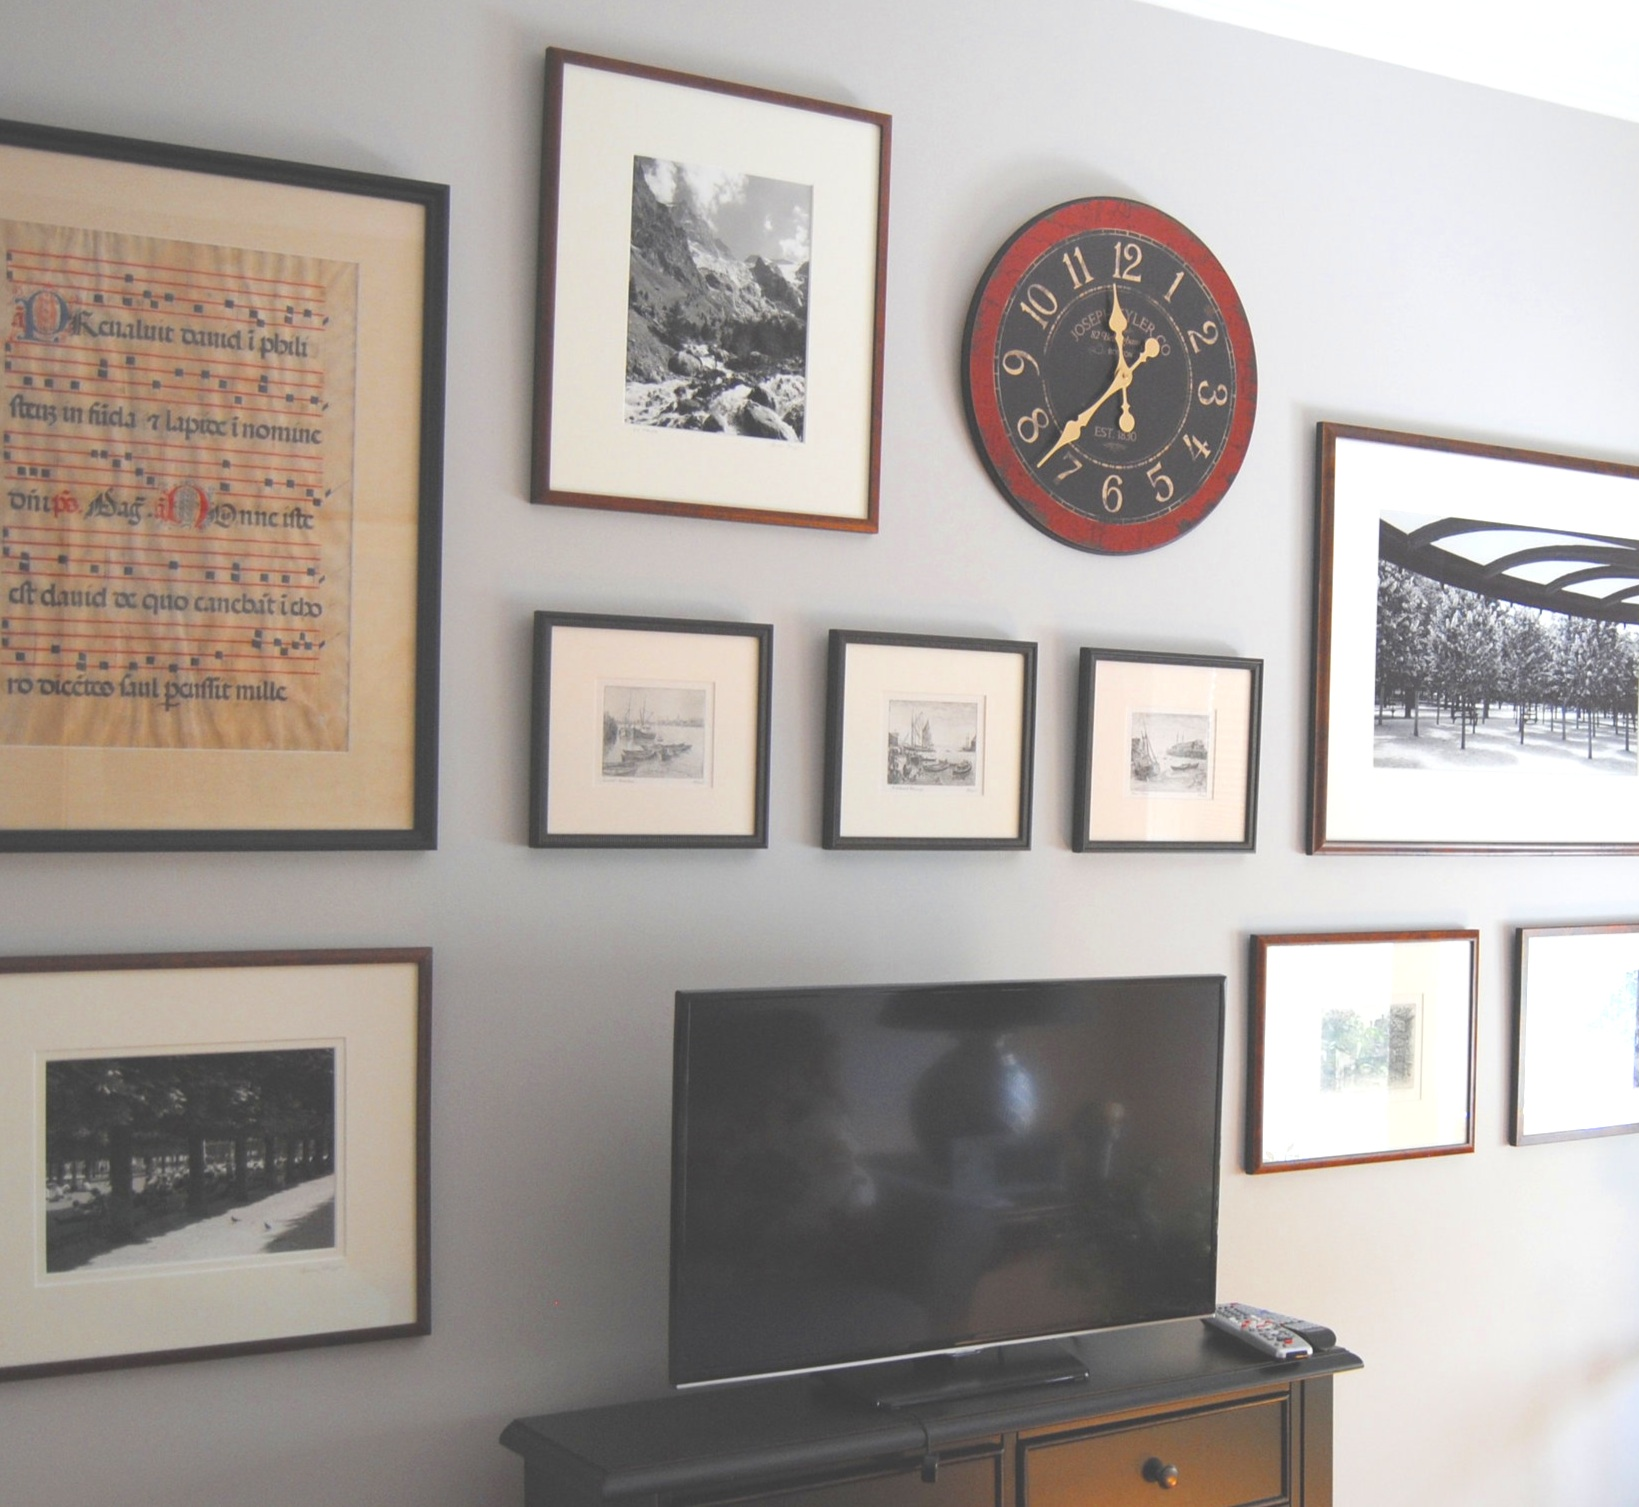 This gallery wall was created with art from the clients' collection and hung to incorporate the TV as part of the design. Touches of black in some of the frames, some of the artwork, and the clock face, as well as the scale of the pieces help to integrate the television seamlessly.